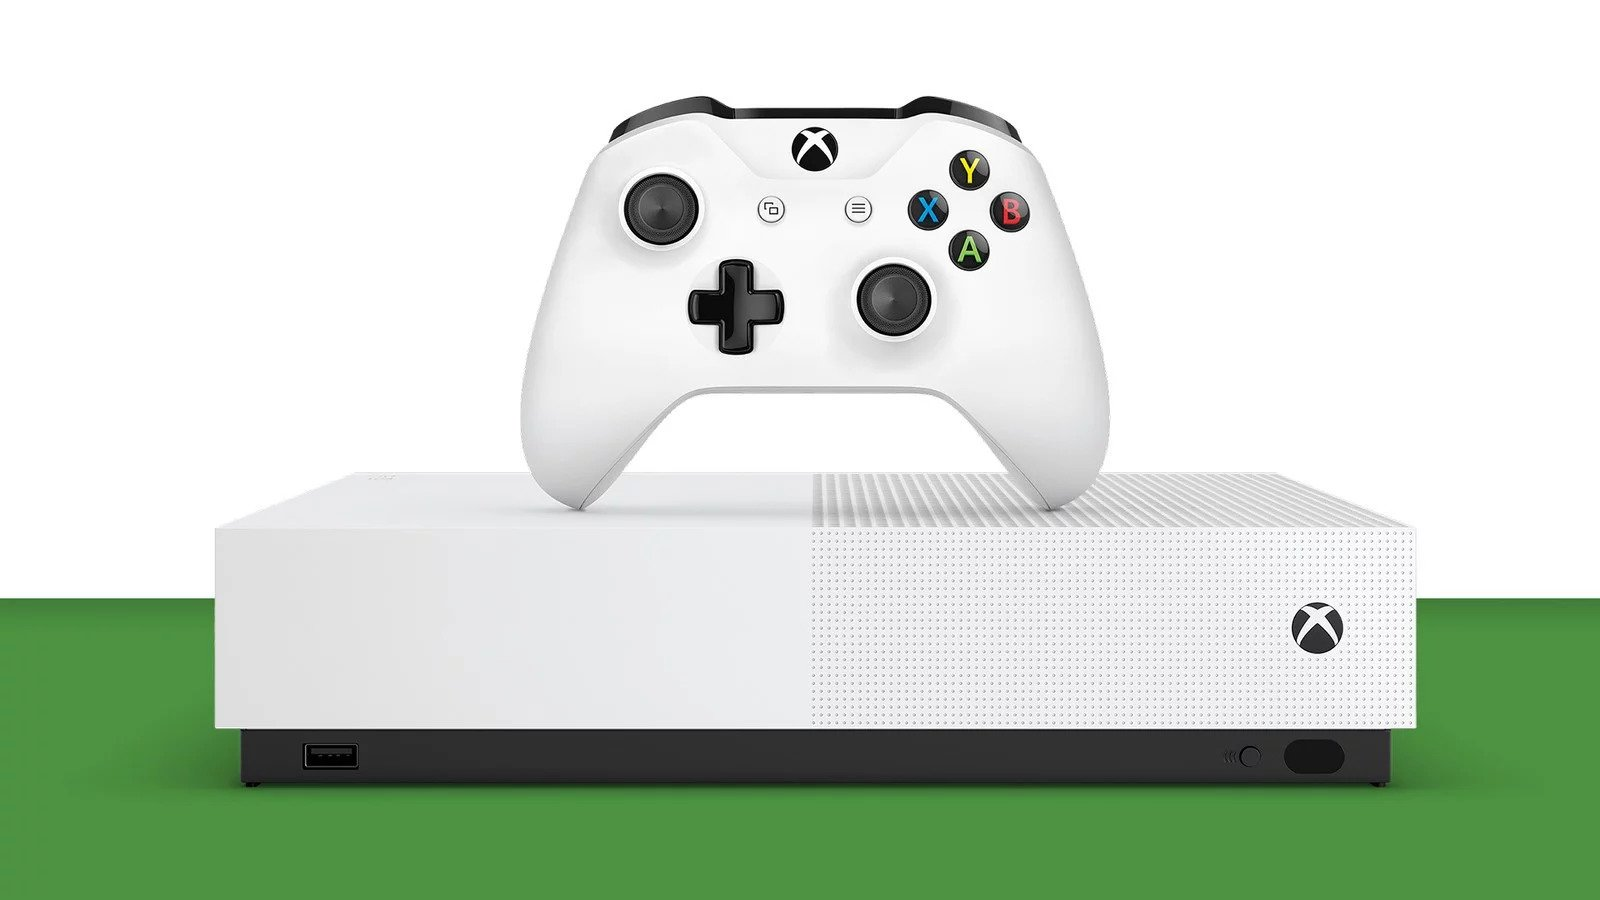 Disc-less Xbox One S All-Digital Edition out next month for £200